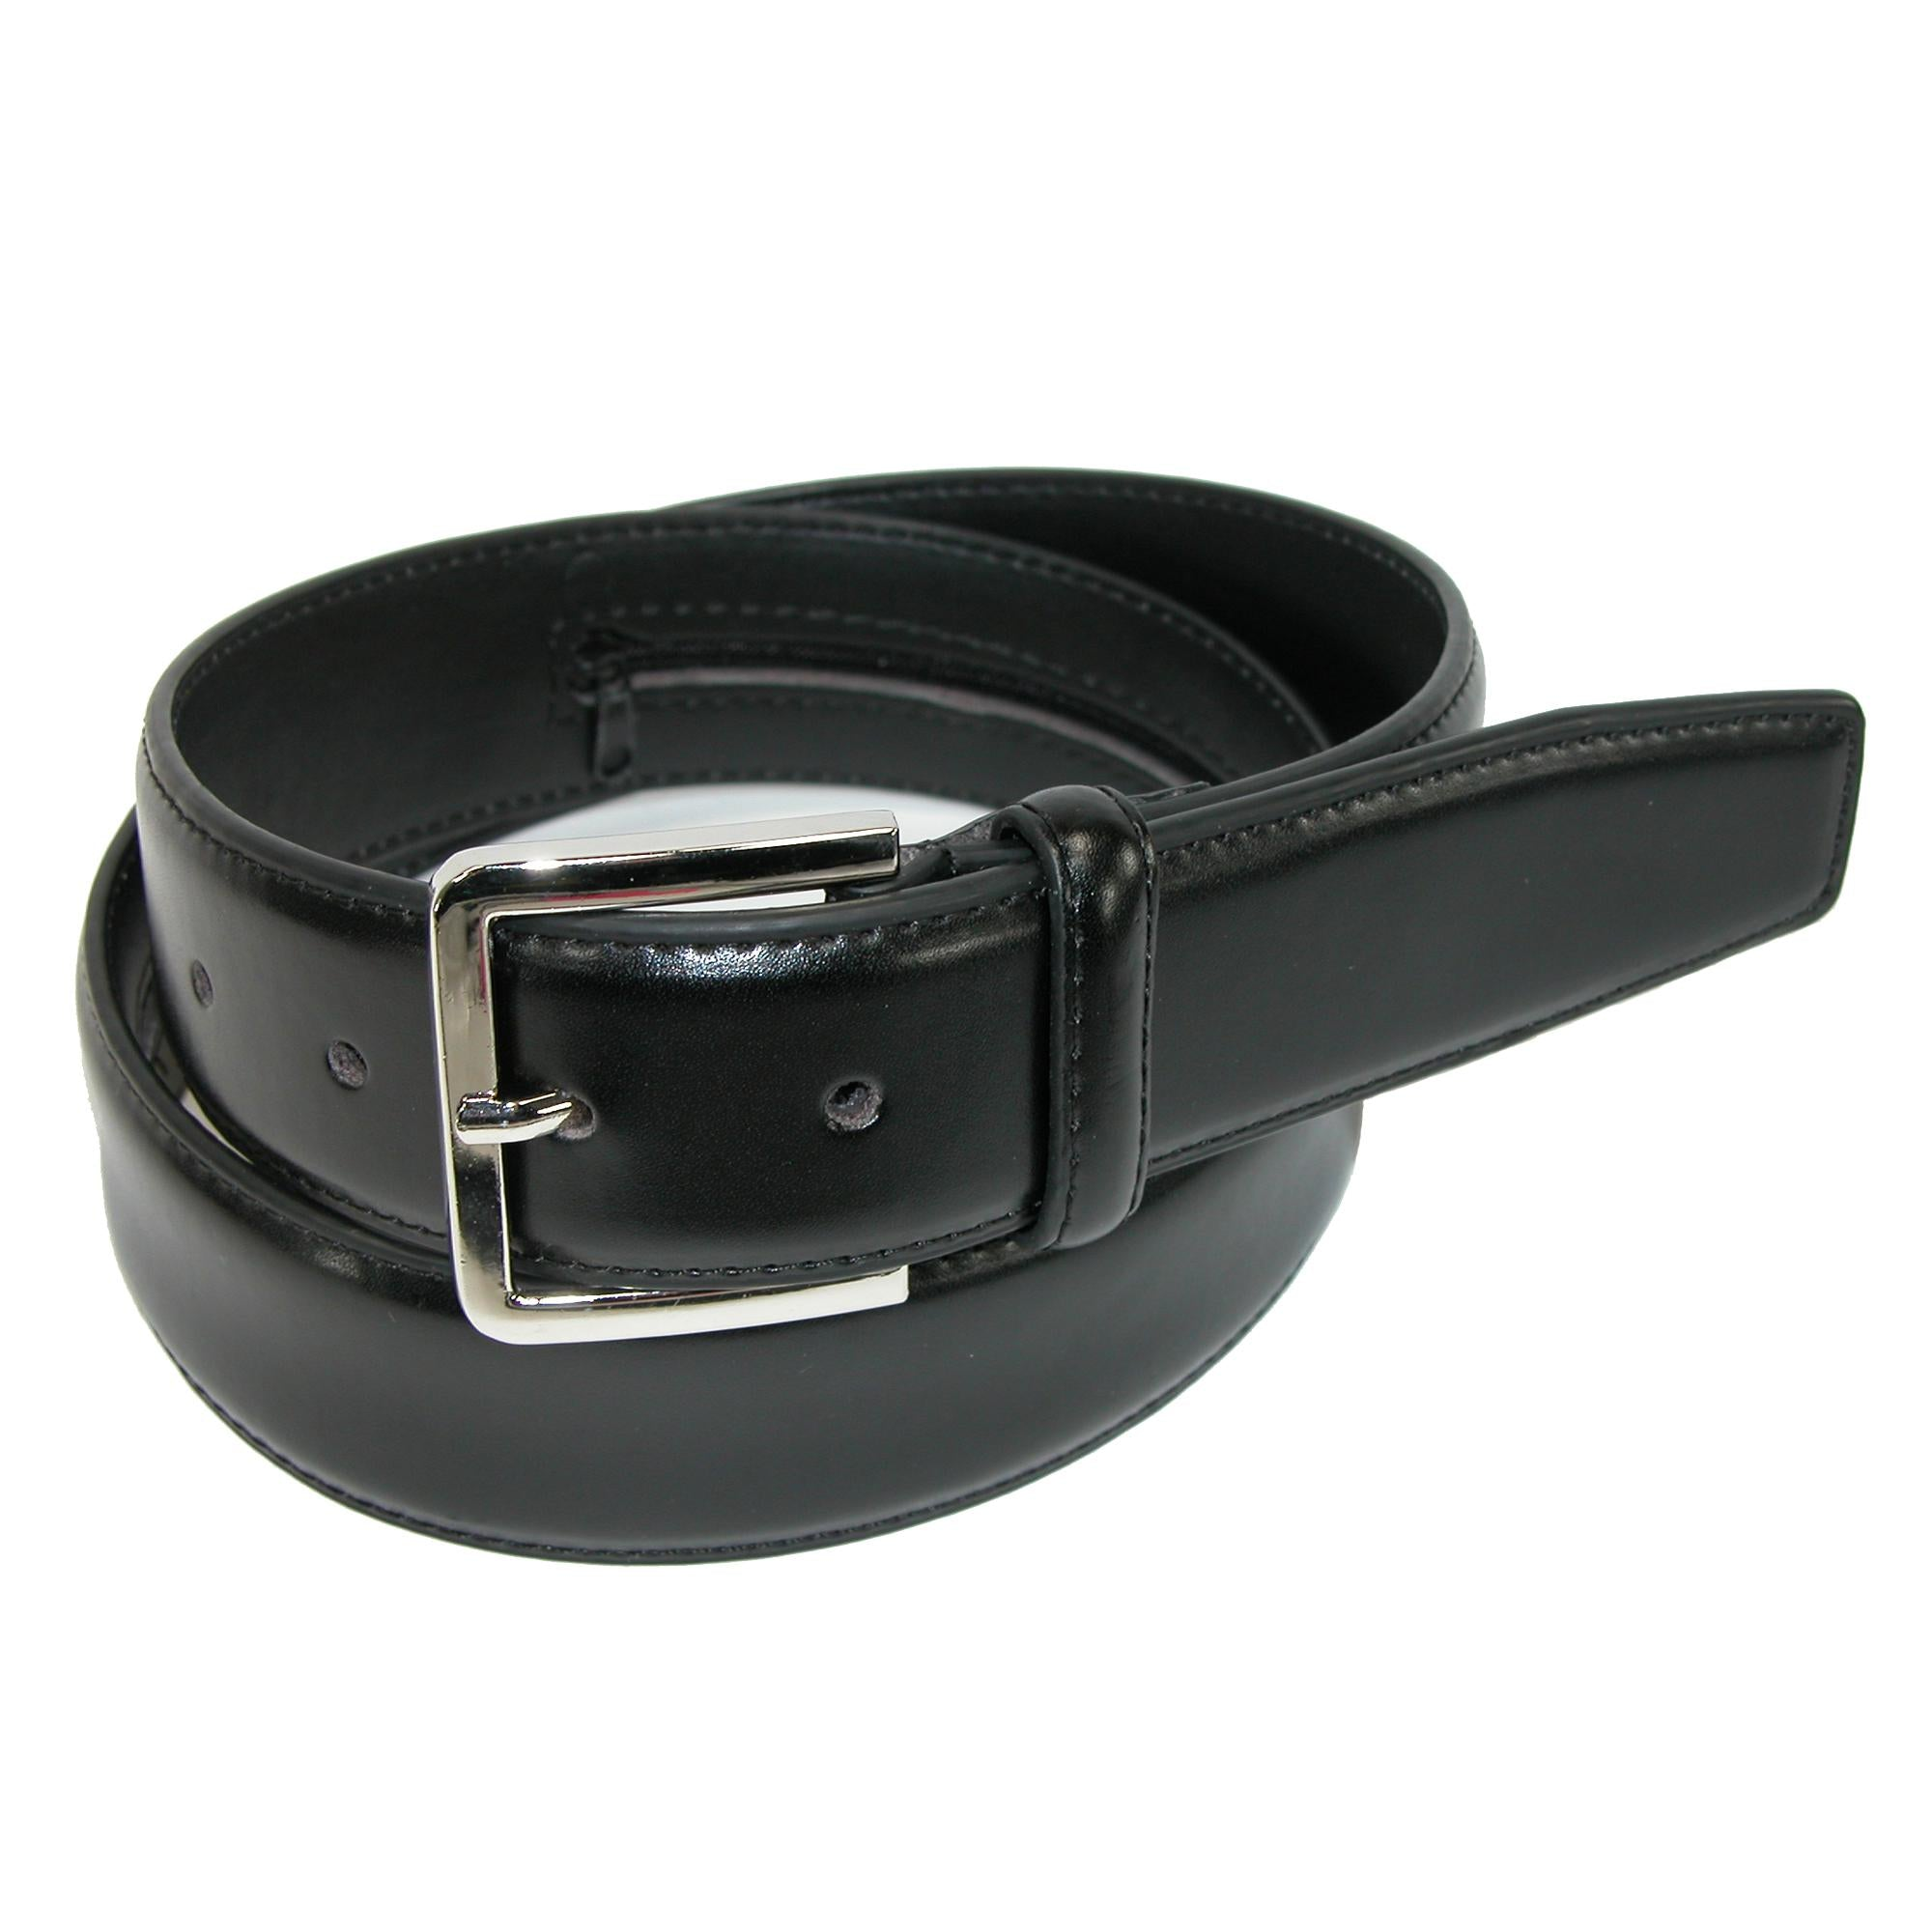 Leather Money Belt - Cheeky Ninjas